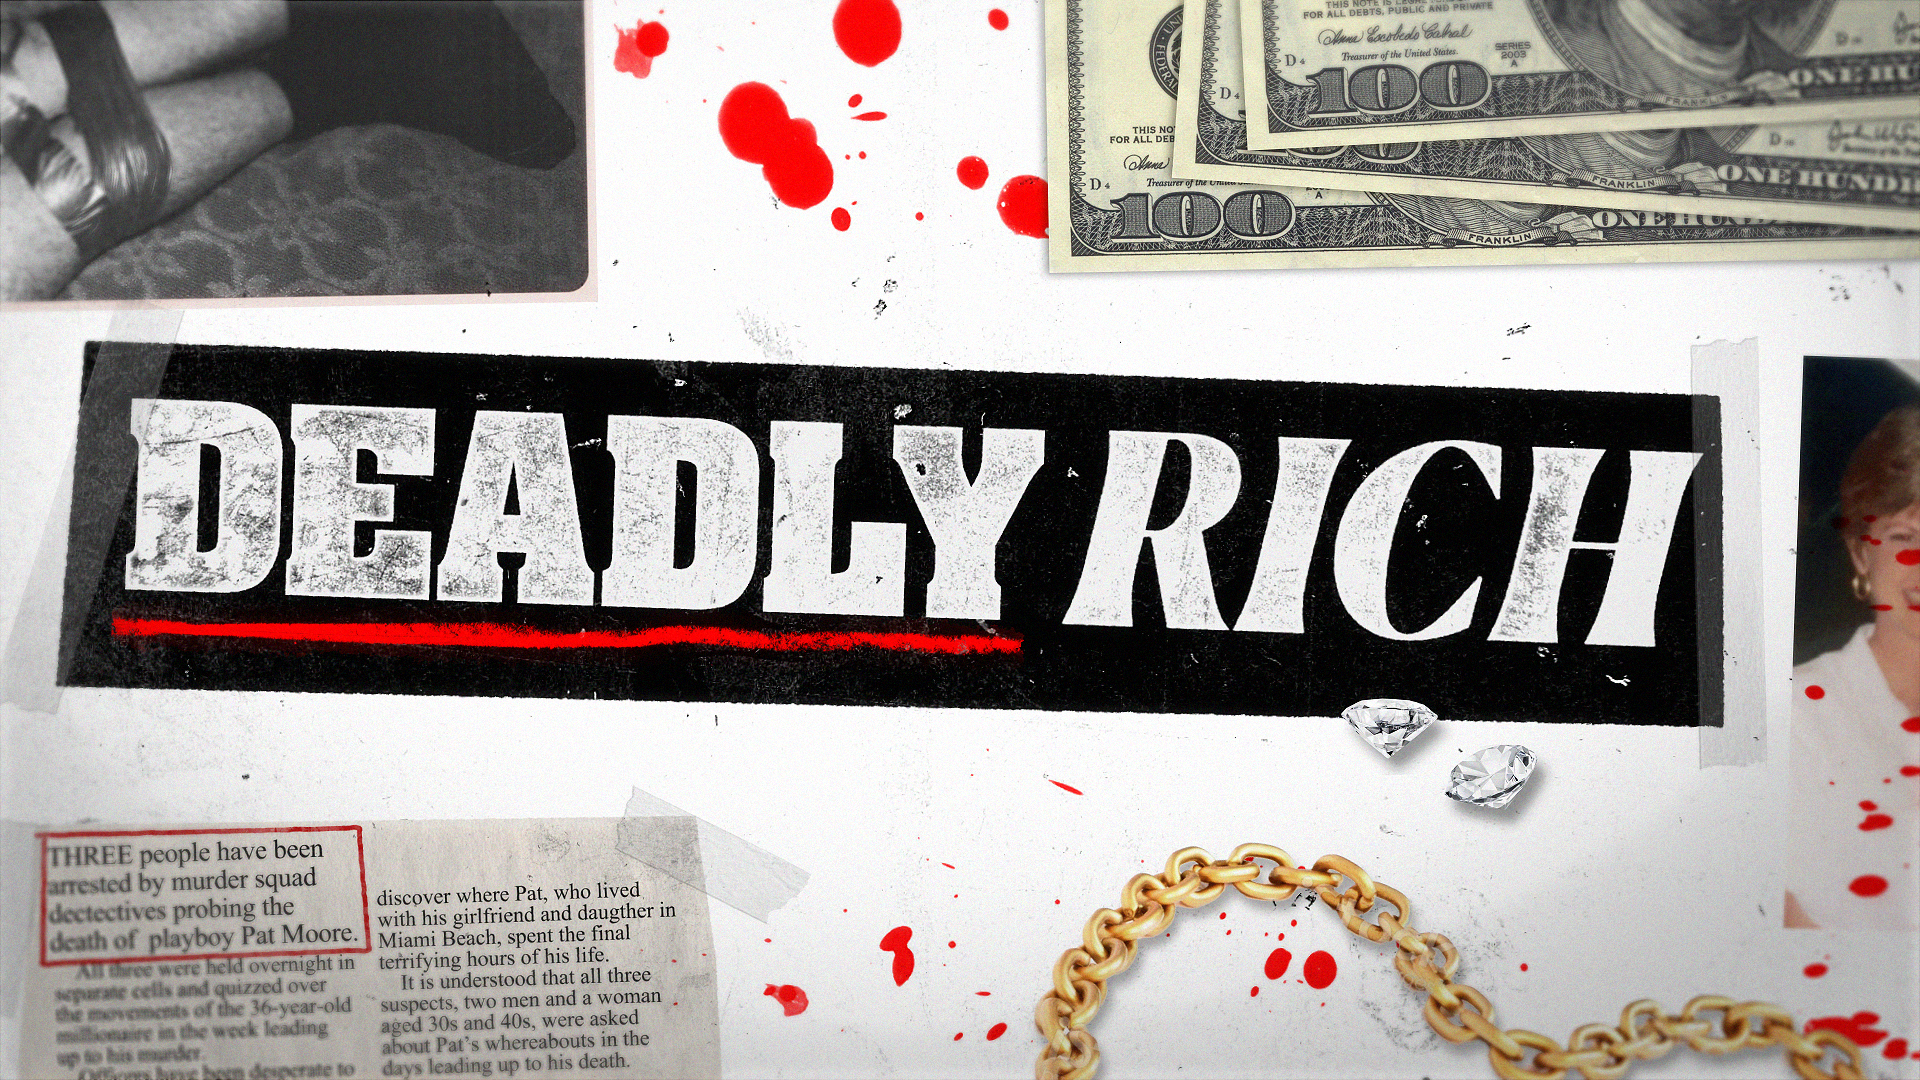 Deadly_Collage_04.jpg